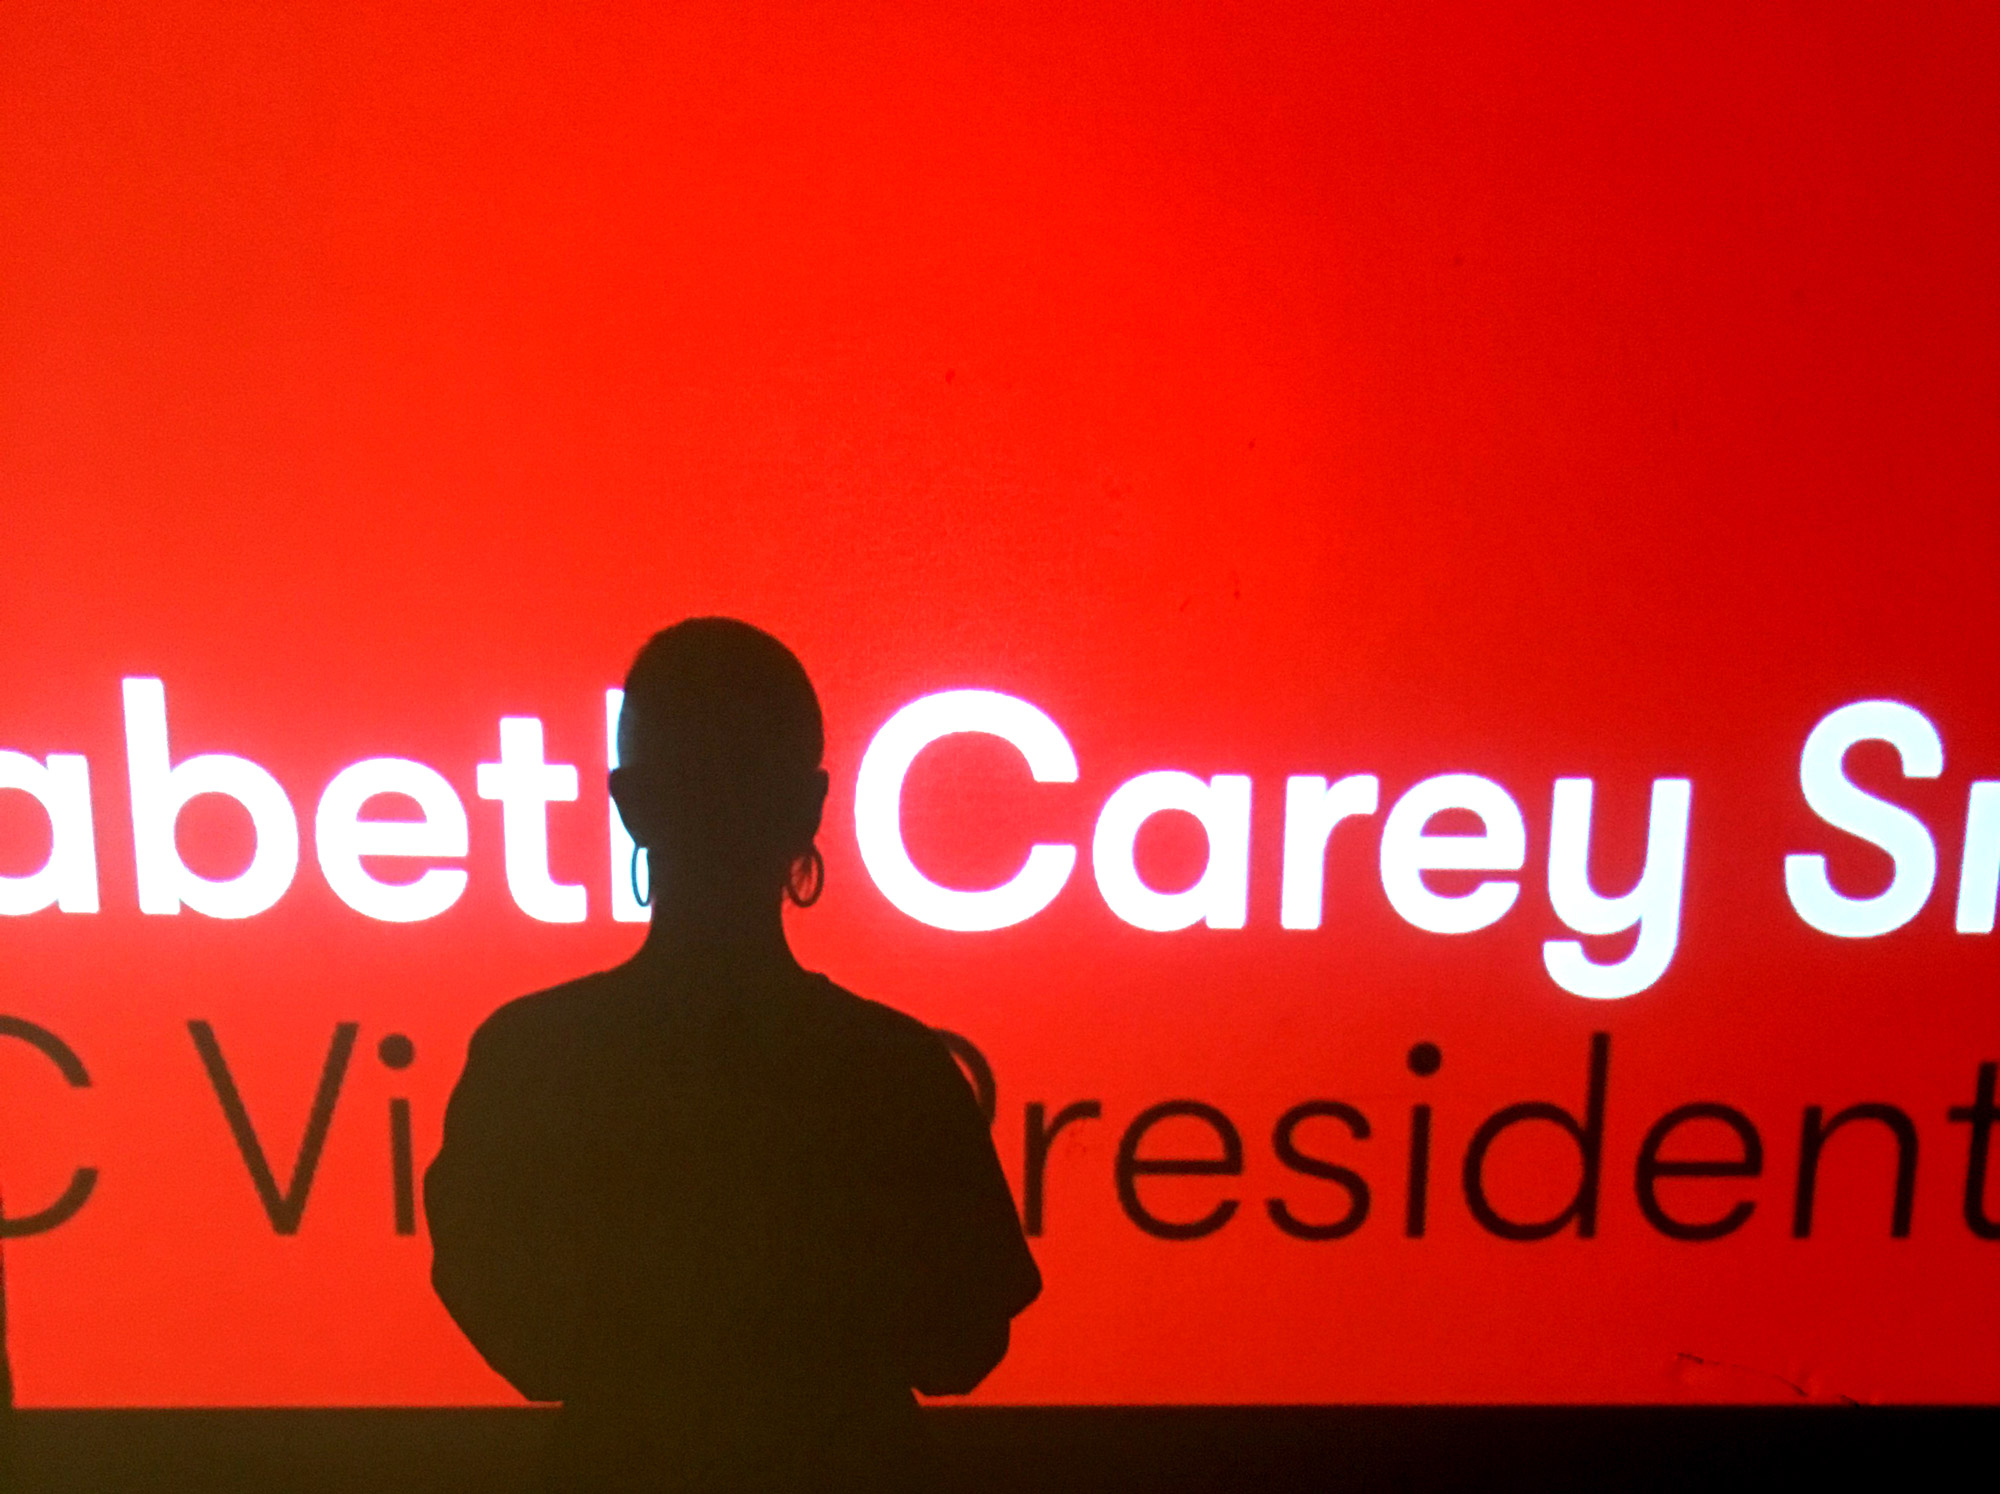 Self-portrait photograph of Elizabeth Carey Smith facing a projection screen displaying her name